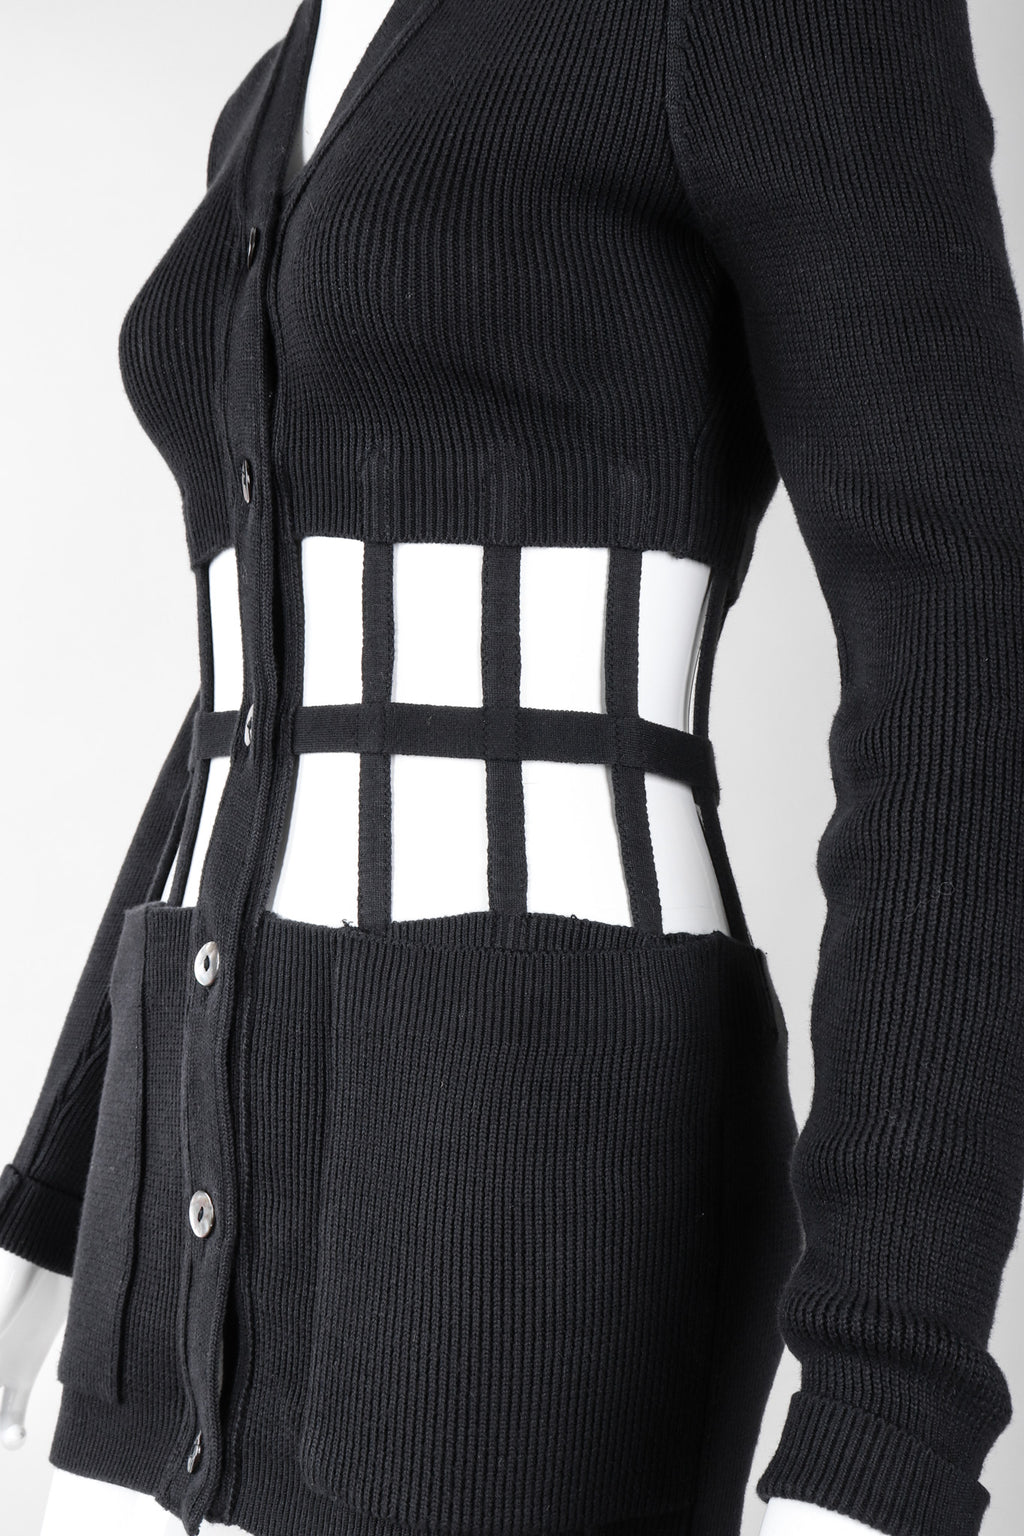 Recess Los Angeles Vintage Jean Paul Gaultier Corset Cage Cardigan Sweater